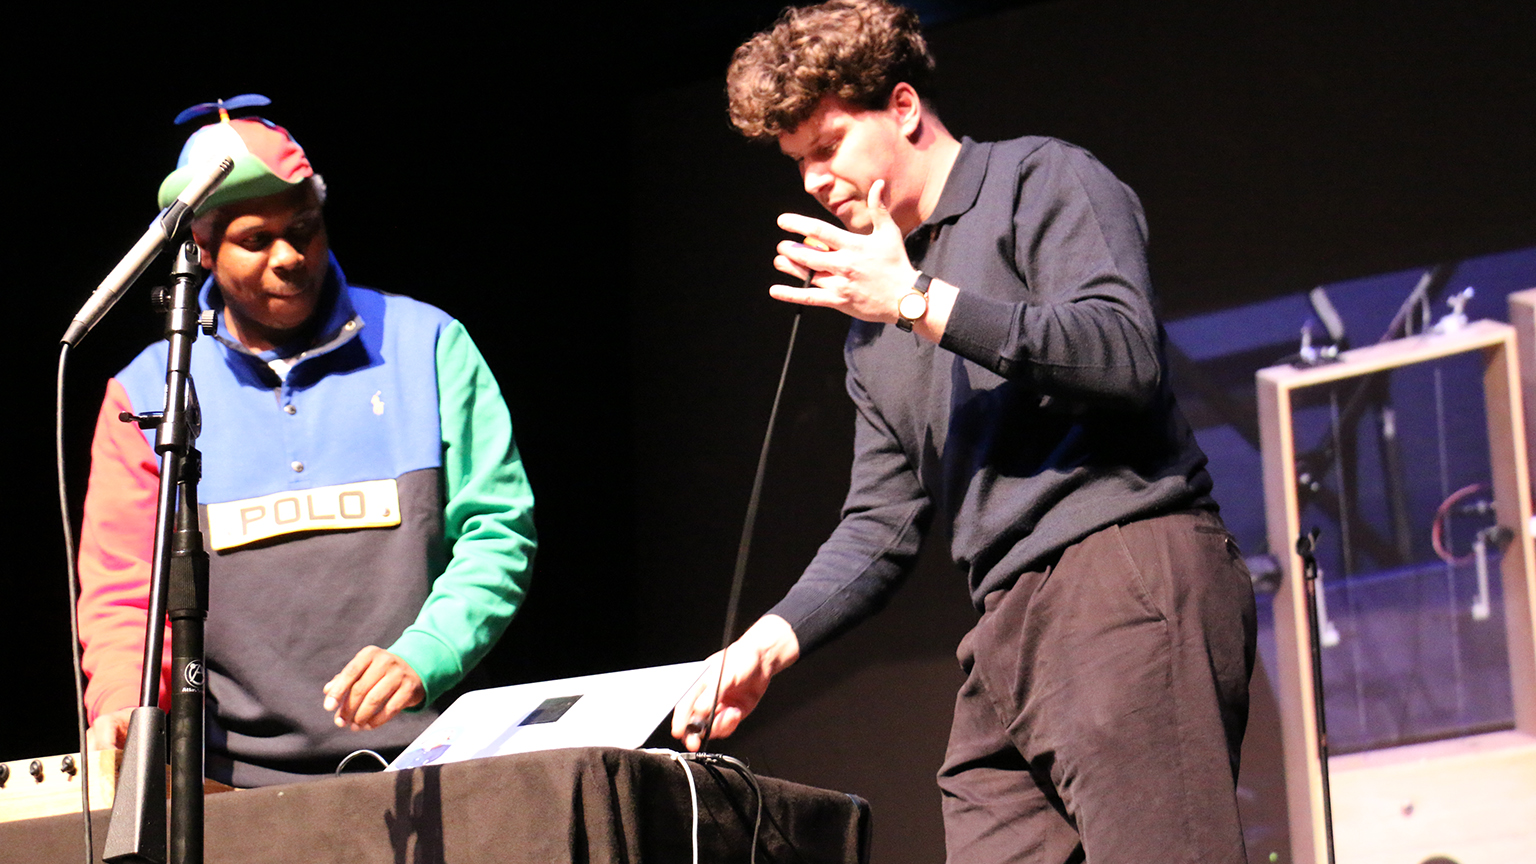 Stretchi creator Hugh Aynsley demonstrates his instrument on stage with collaborator Shannon Ladson.